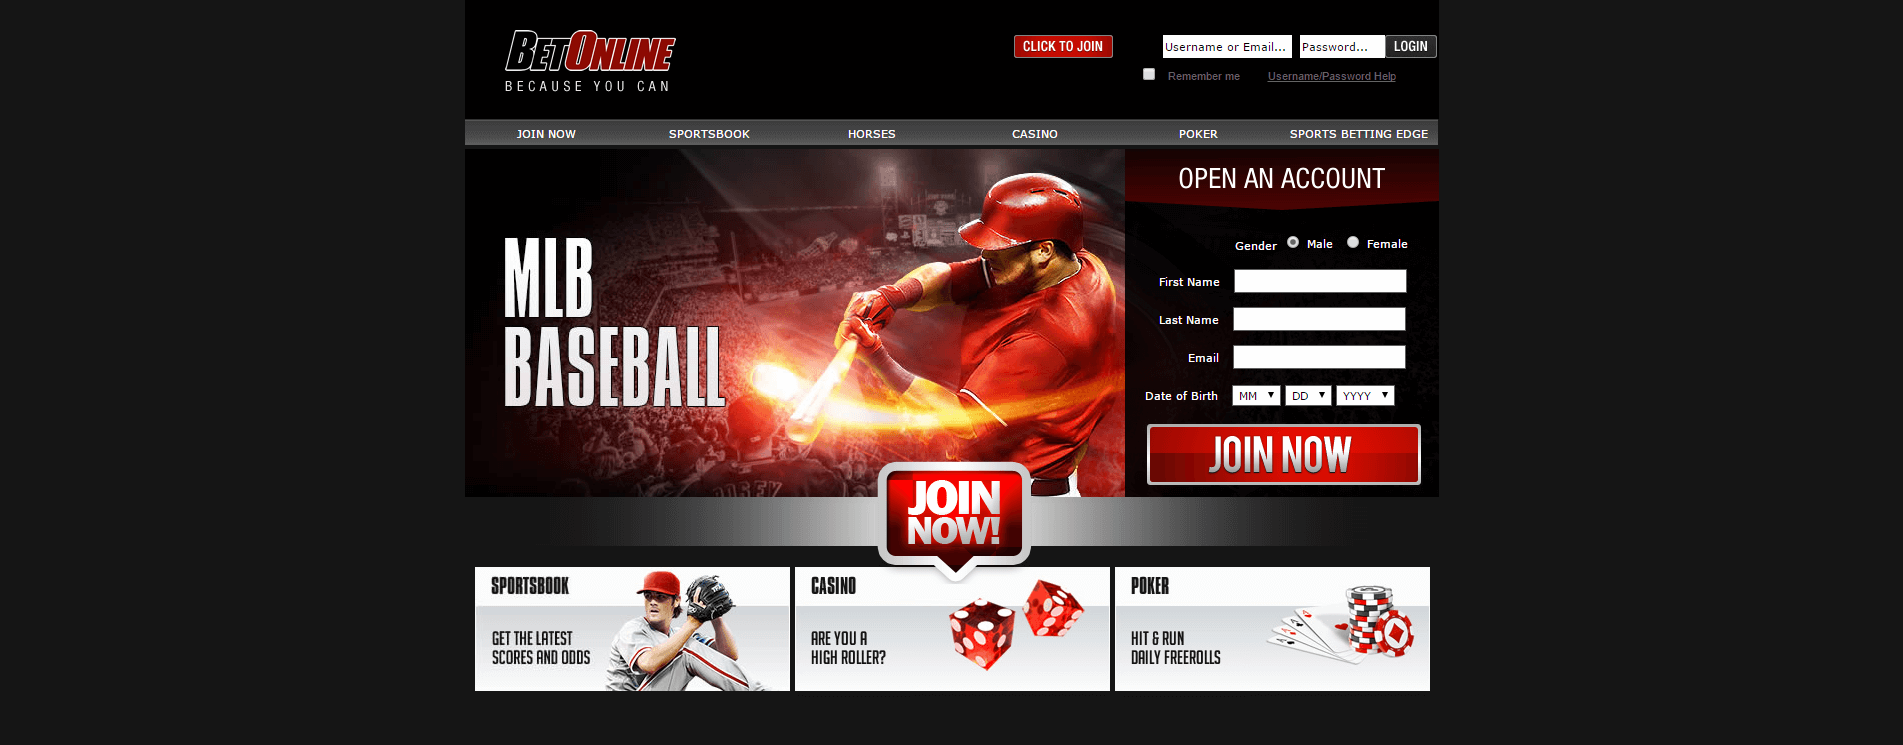 Betonline review: top betting sites and sports betting online